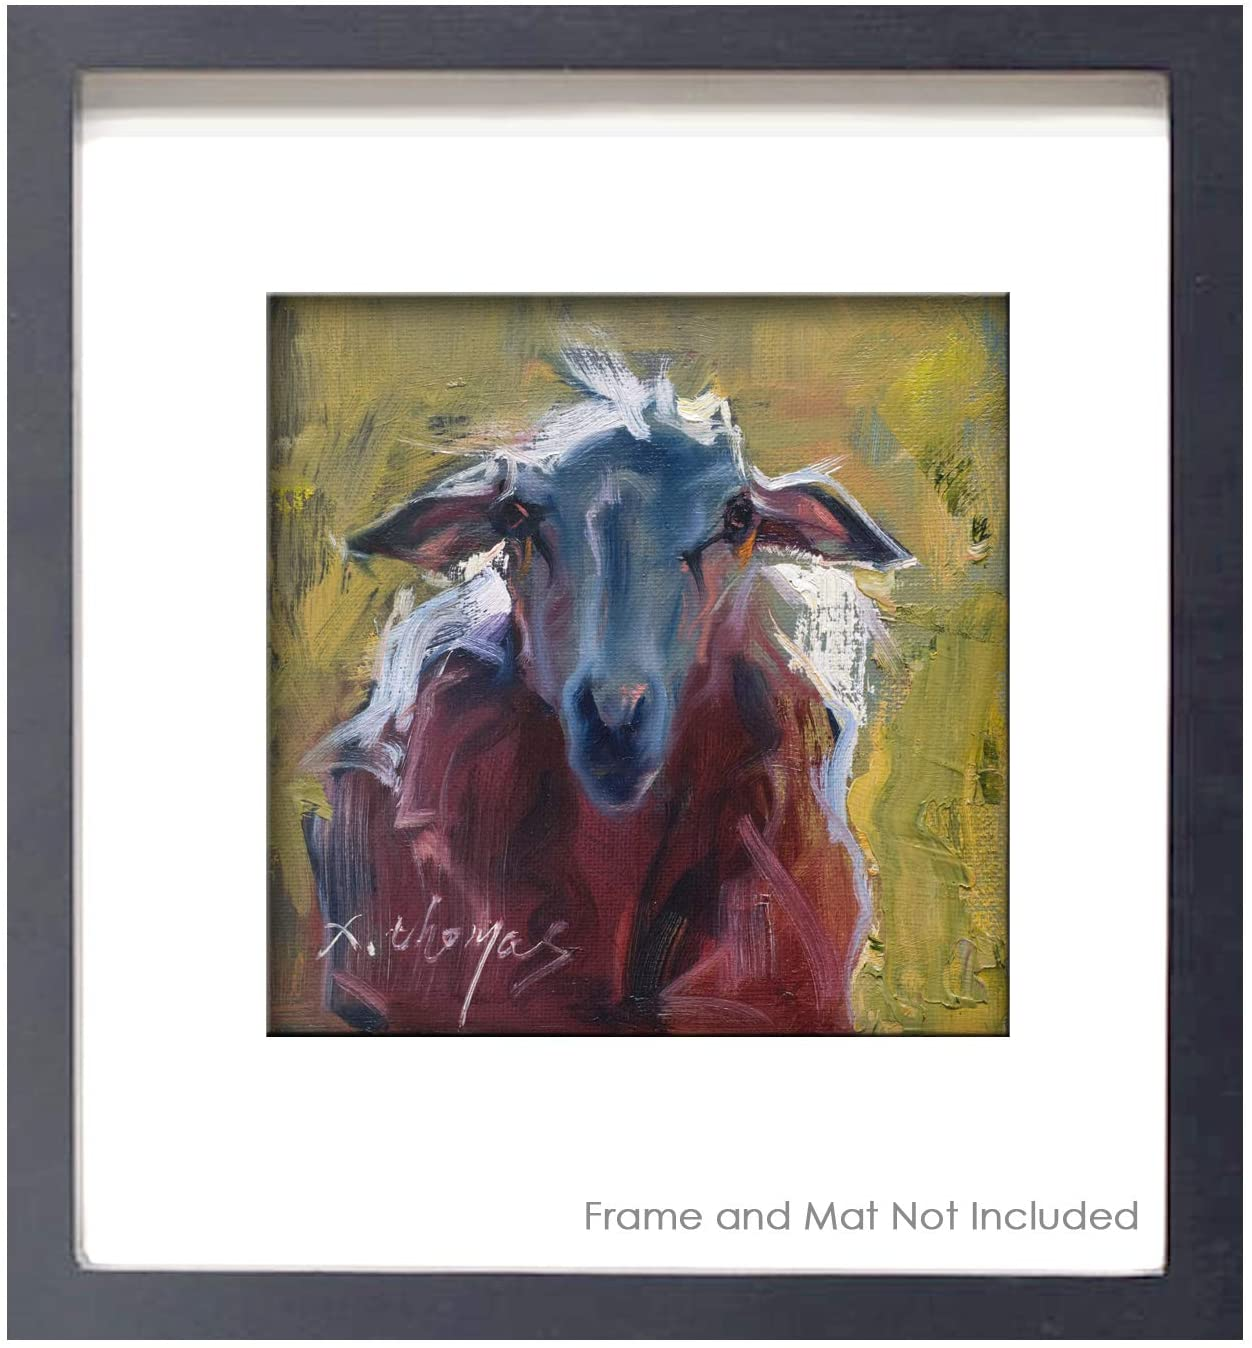 Farm Animal Pictures Wall Art Decor, Sheep Painting Print Poster, Wall Art for Kitchen Bedroom- Unframed, 6x6 inch